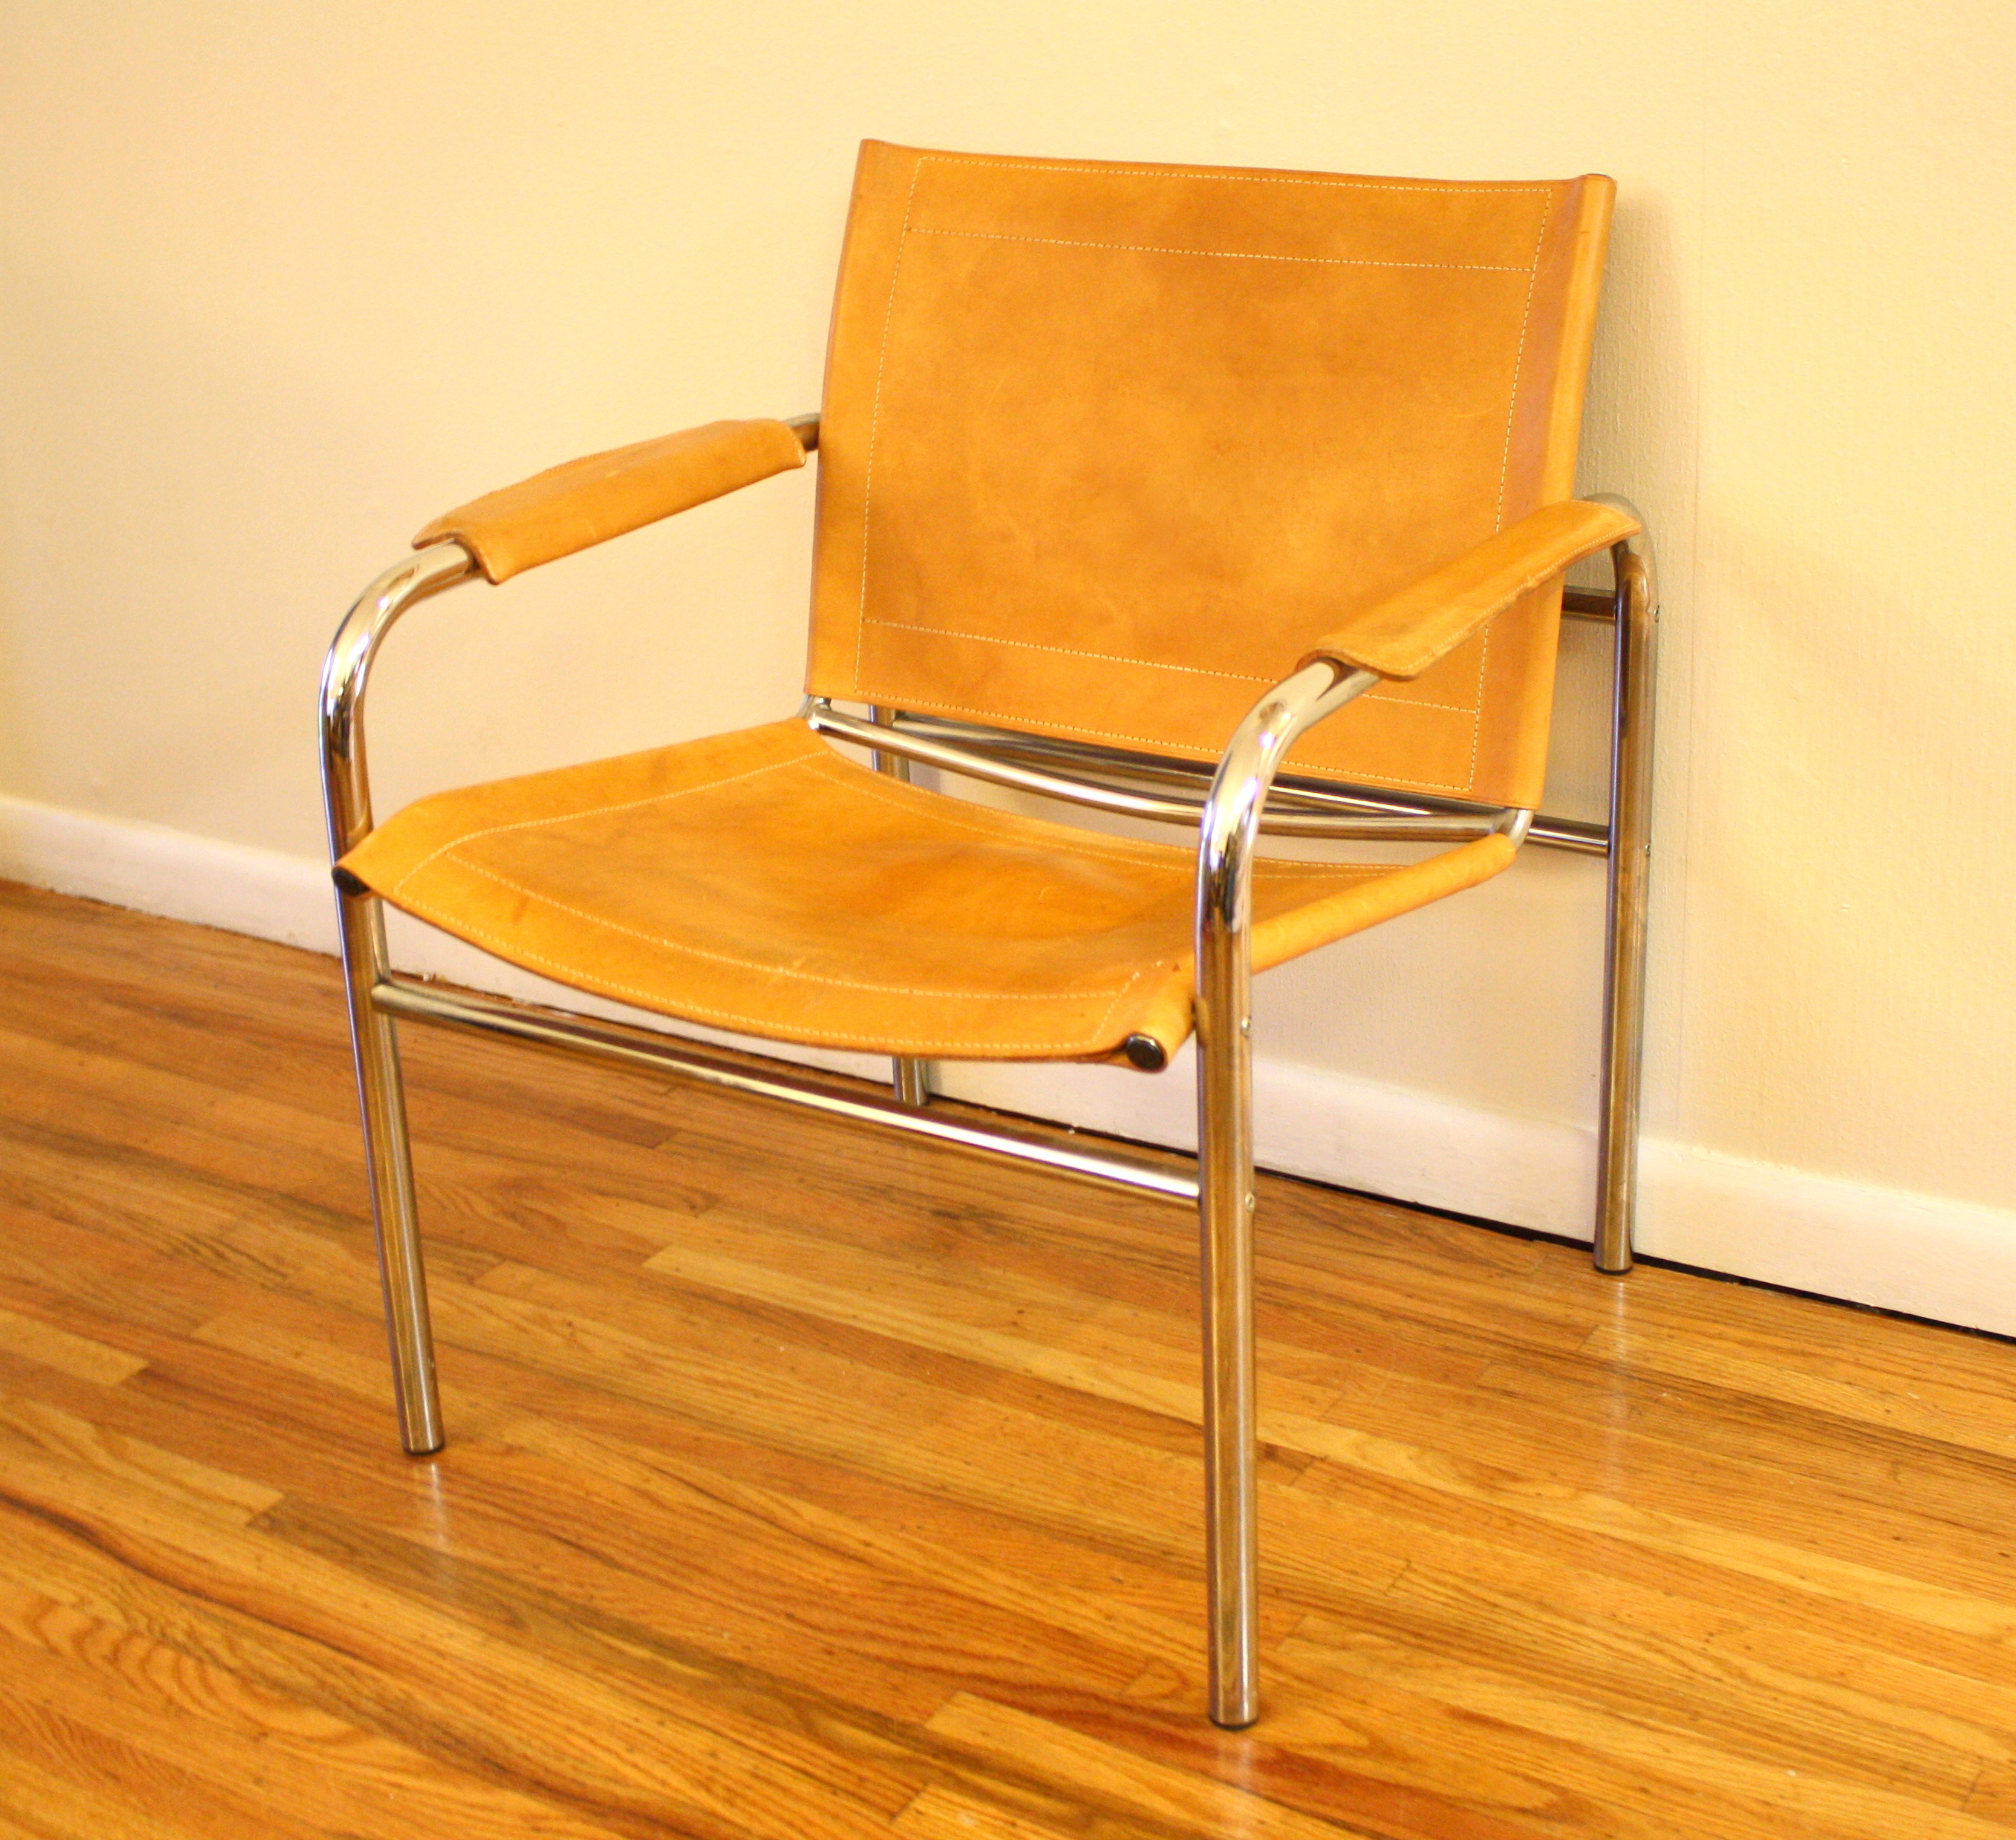 Mid Century Modern Arm Chairs Picked Vintage : mcm chrome leather chair from pickedvintage.com size 2634 x 2404 jpeg 2964kB